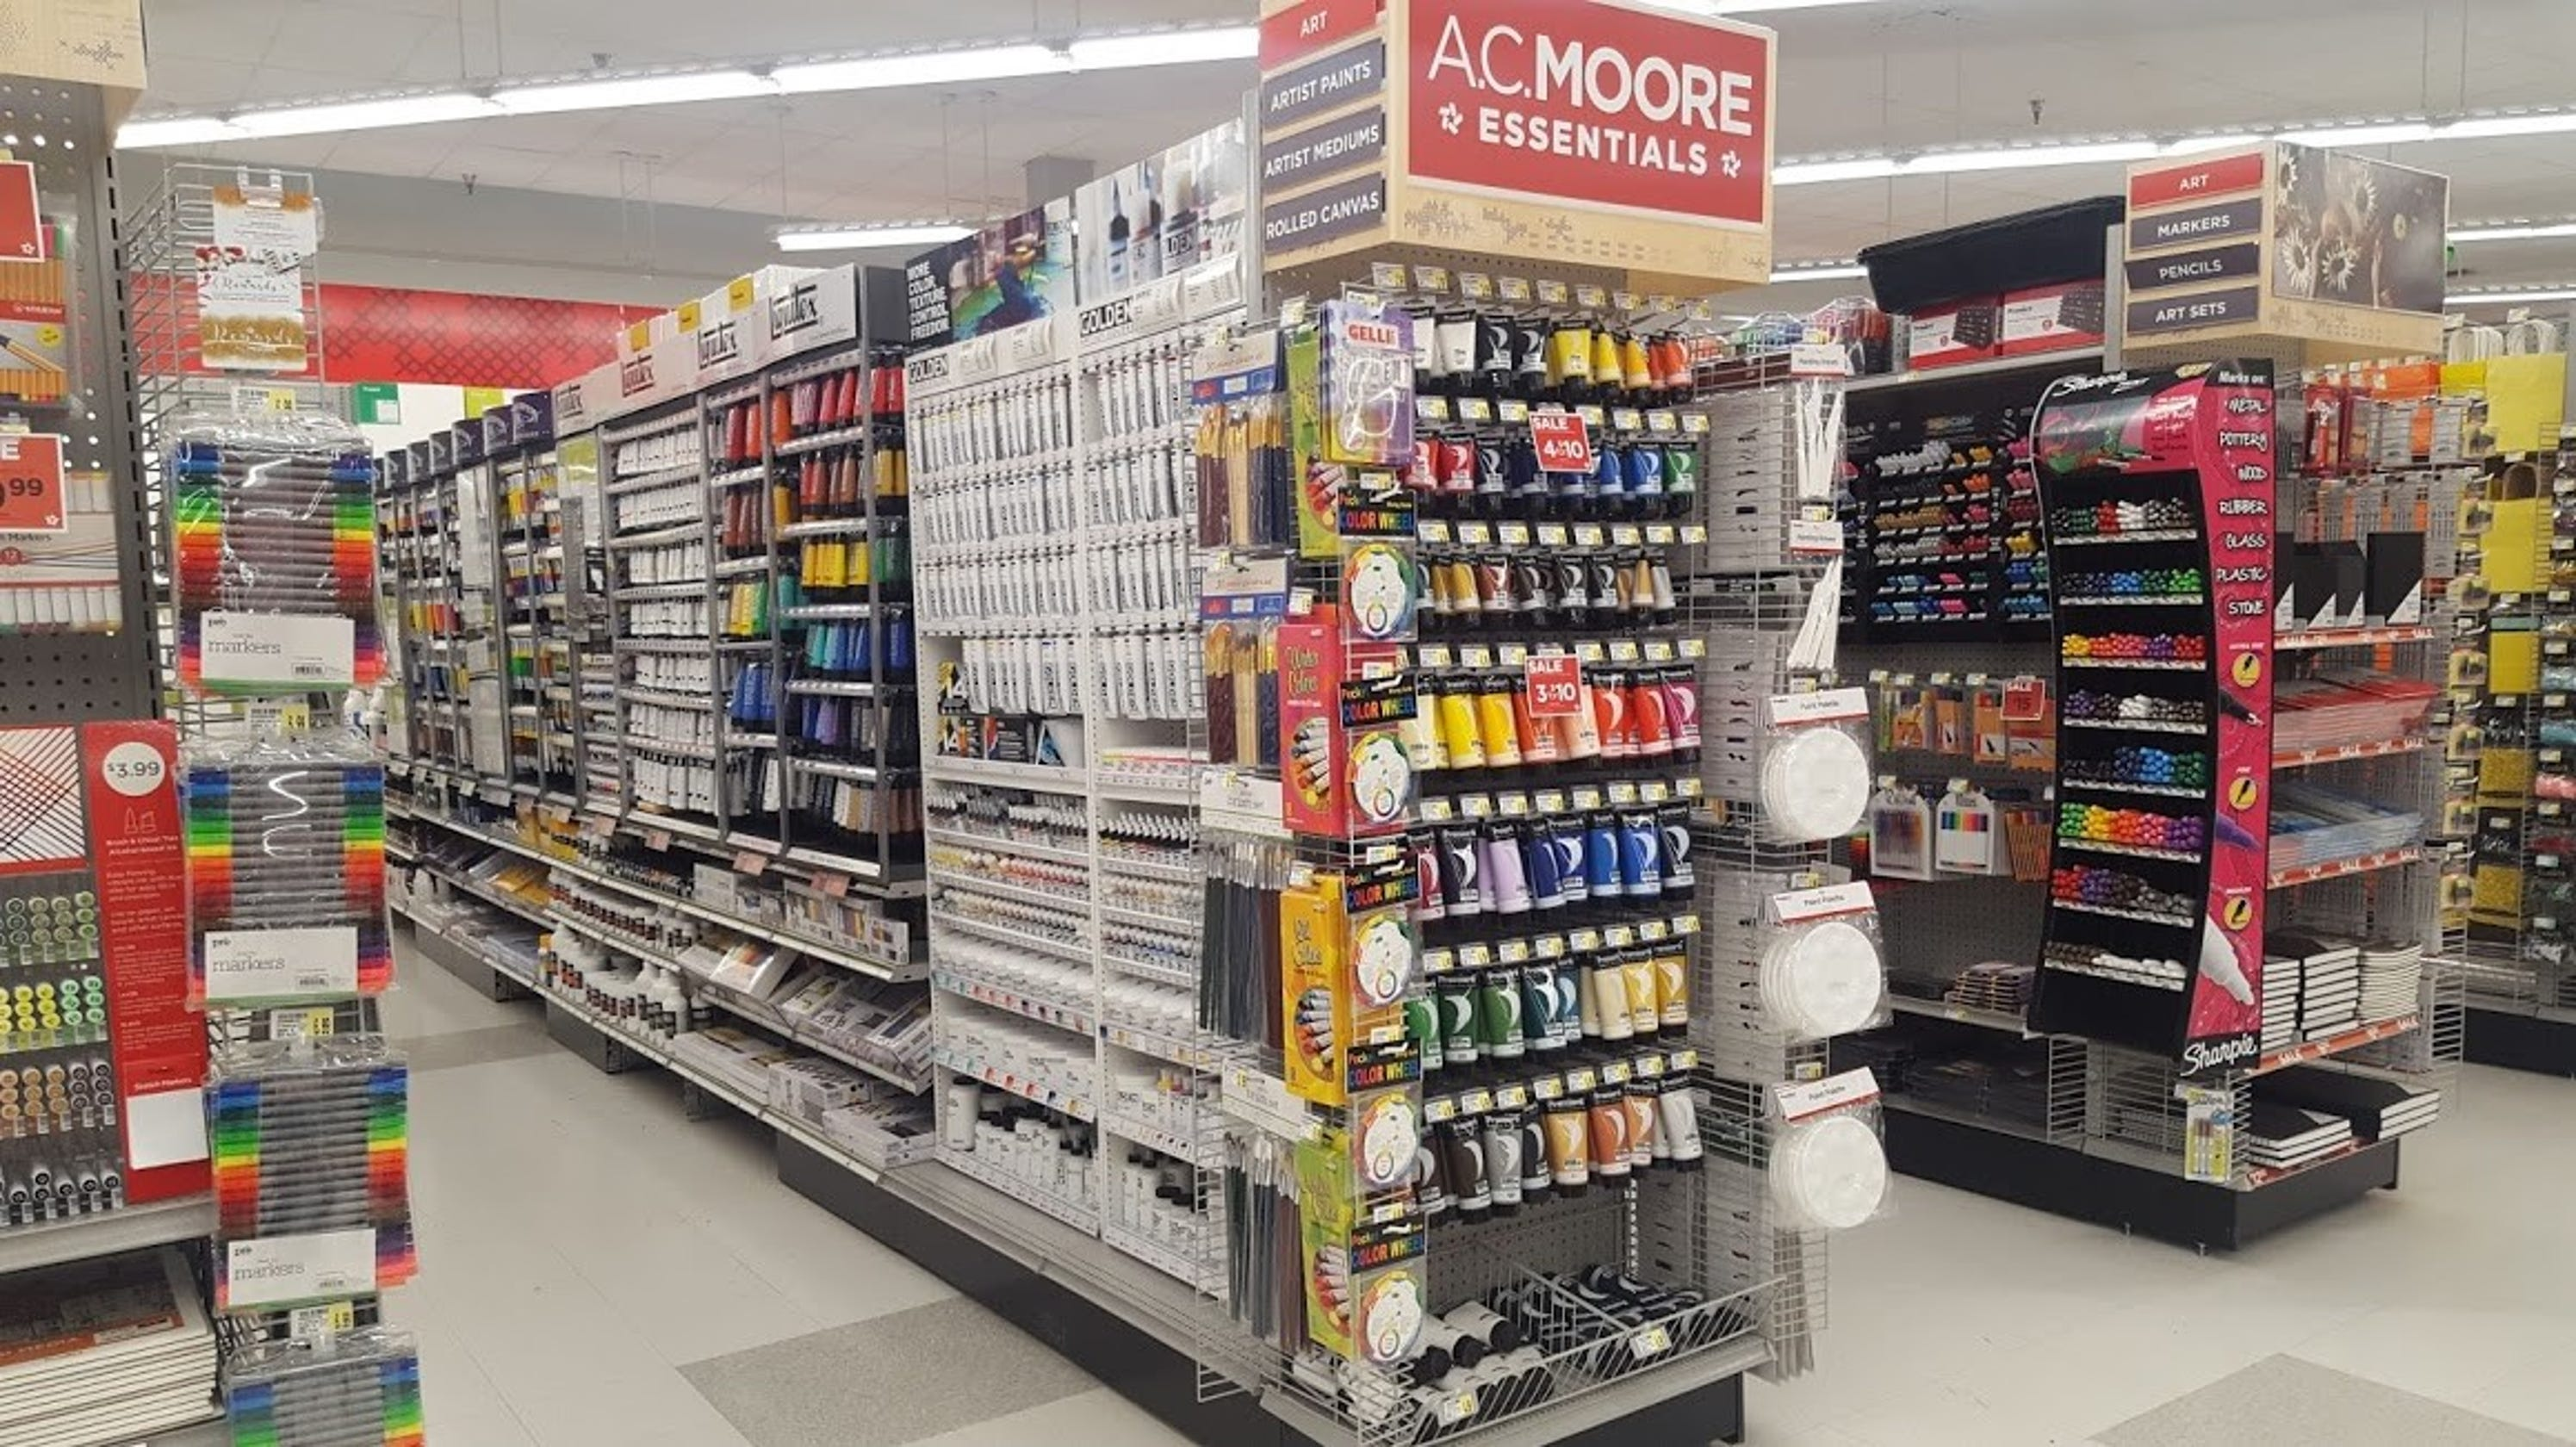 a c moore essentials brings new store idea to wall